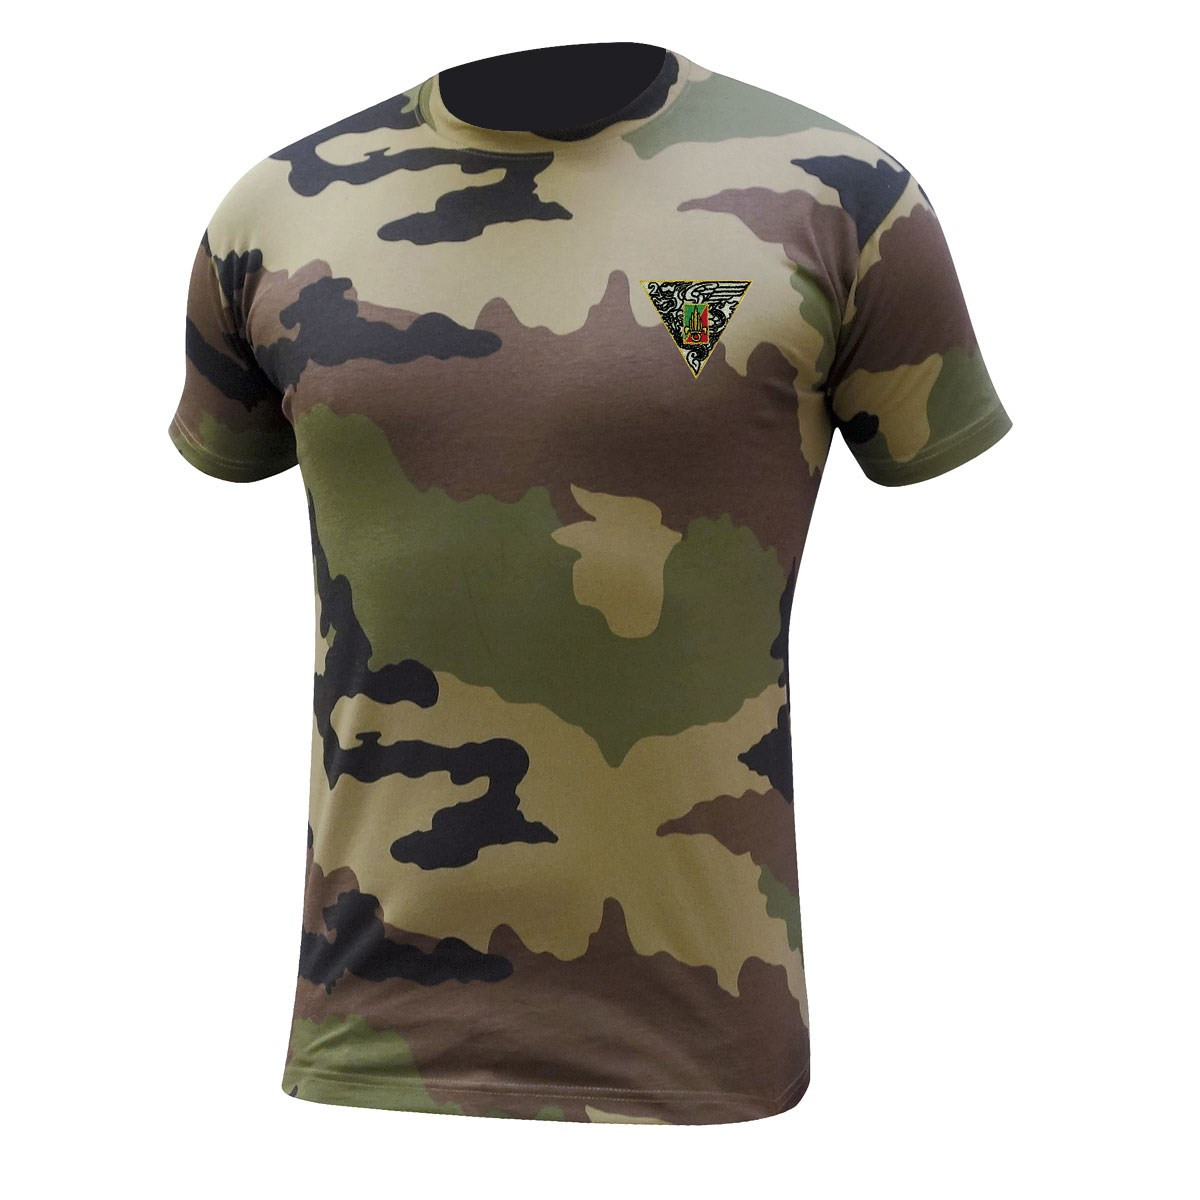 TEE SHIRT MANCHES COURTES CAMOUFLAGE BRODE 2 REP